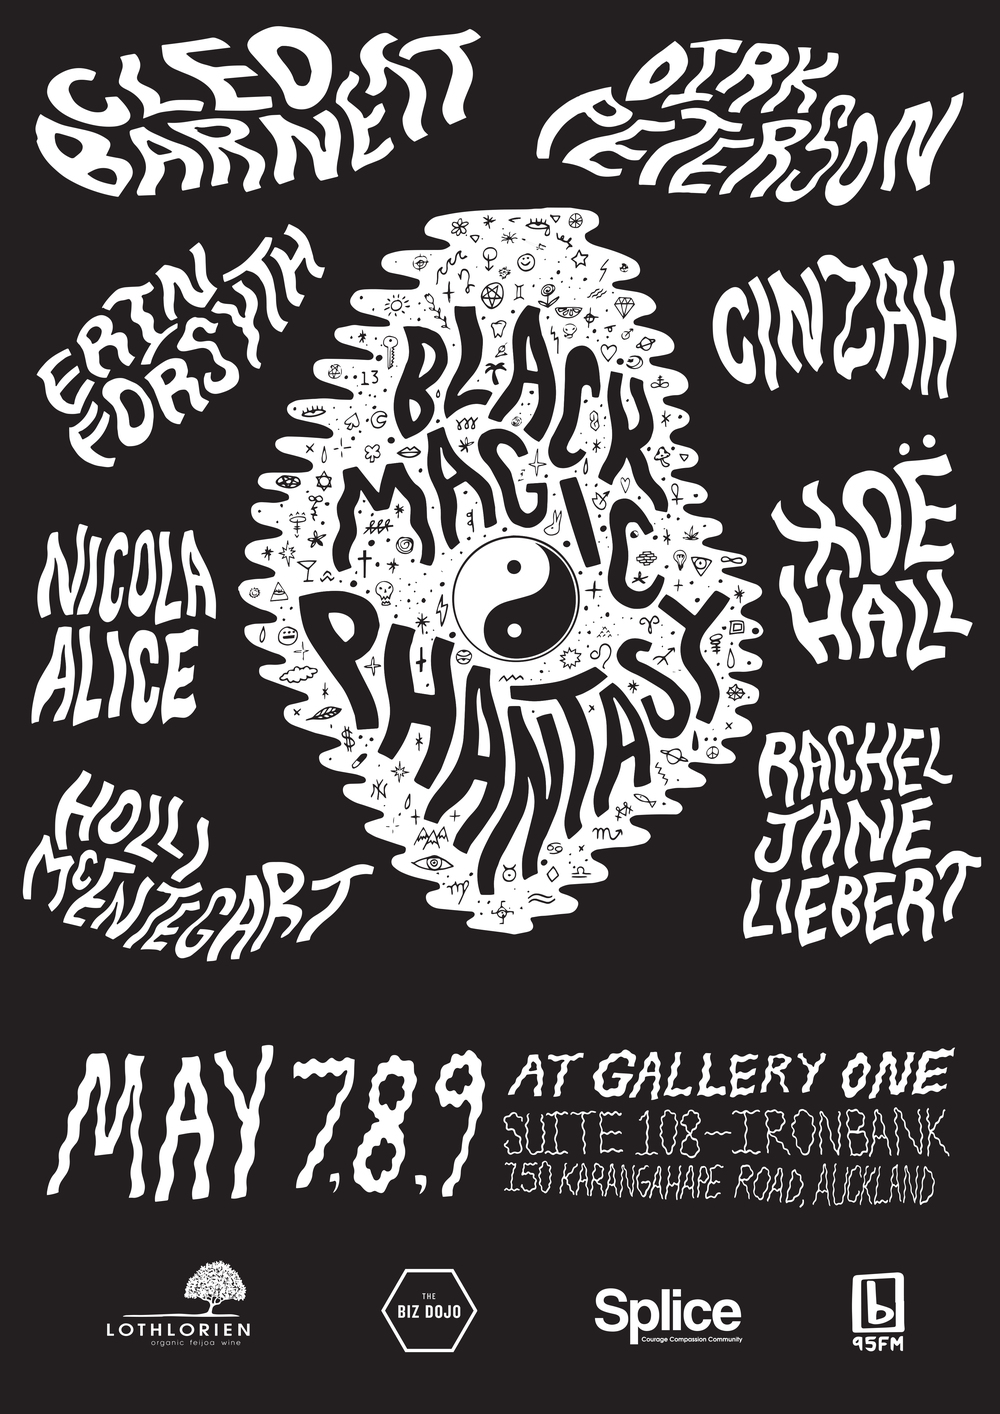 May 7,8,9 at Gallery One. Suite 108 Ironbank. 150 K rd, Auckland.